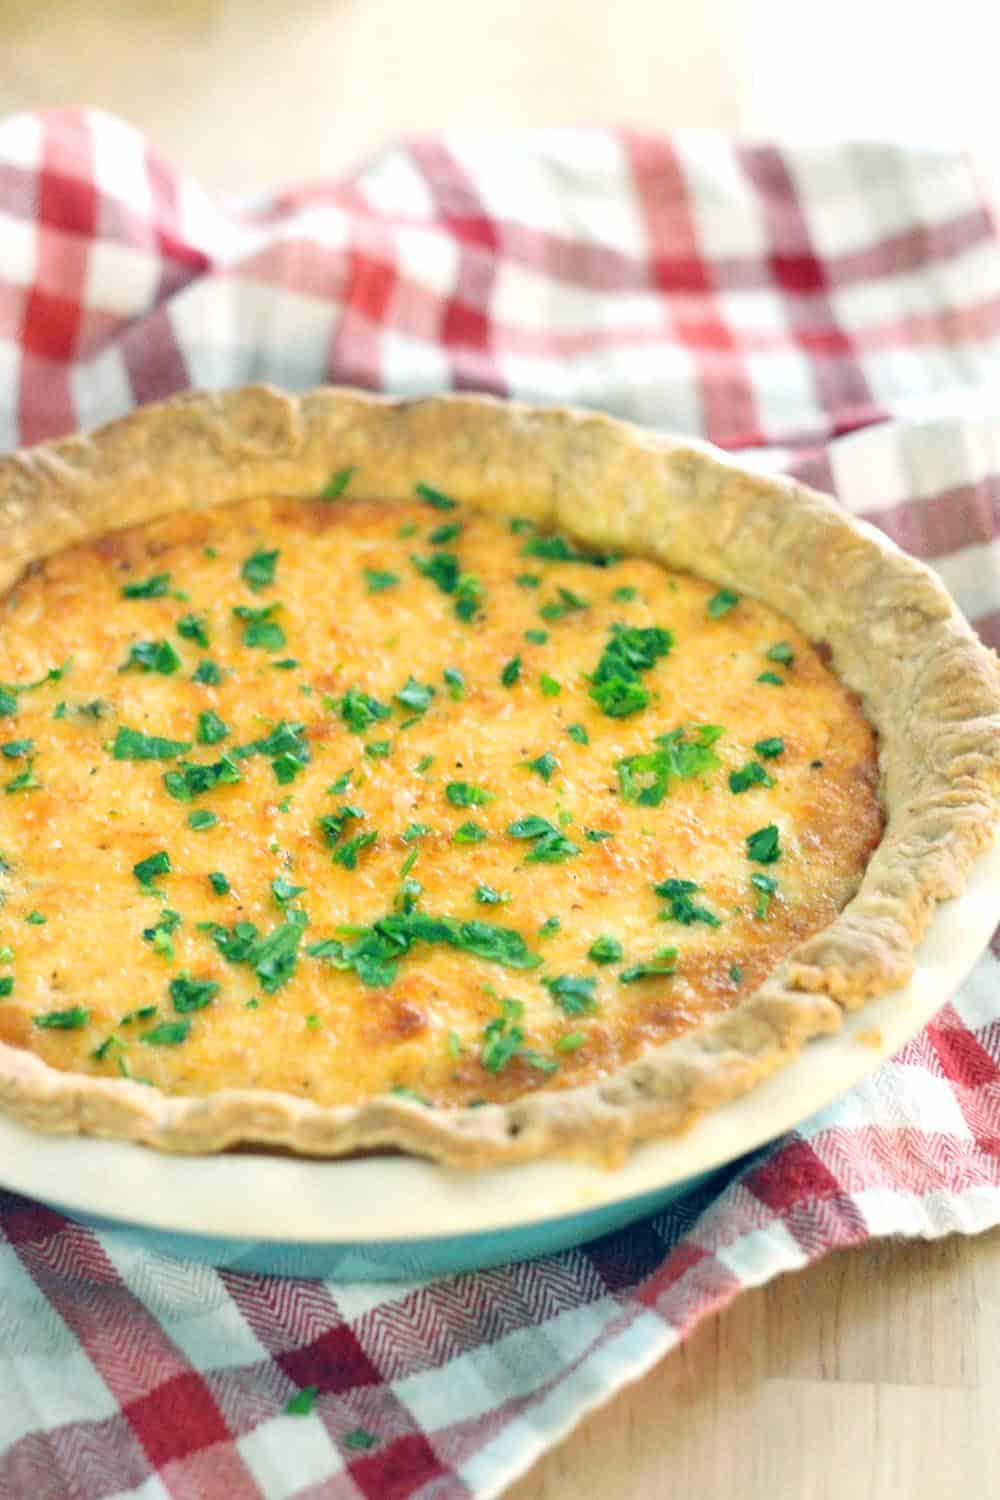 Whole Spicy Southern Tomato and Spinach Pie in a ceramic pie dish, on a red and white checkered cloth.